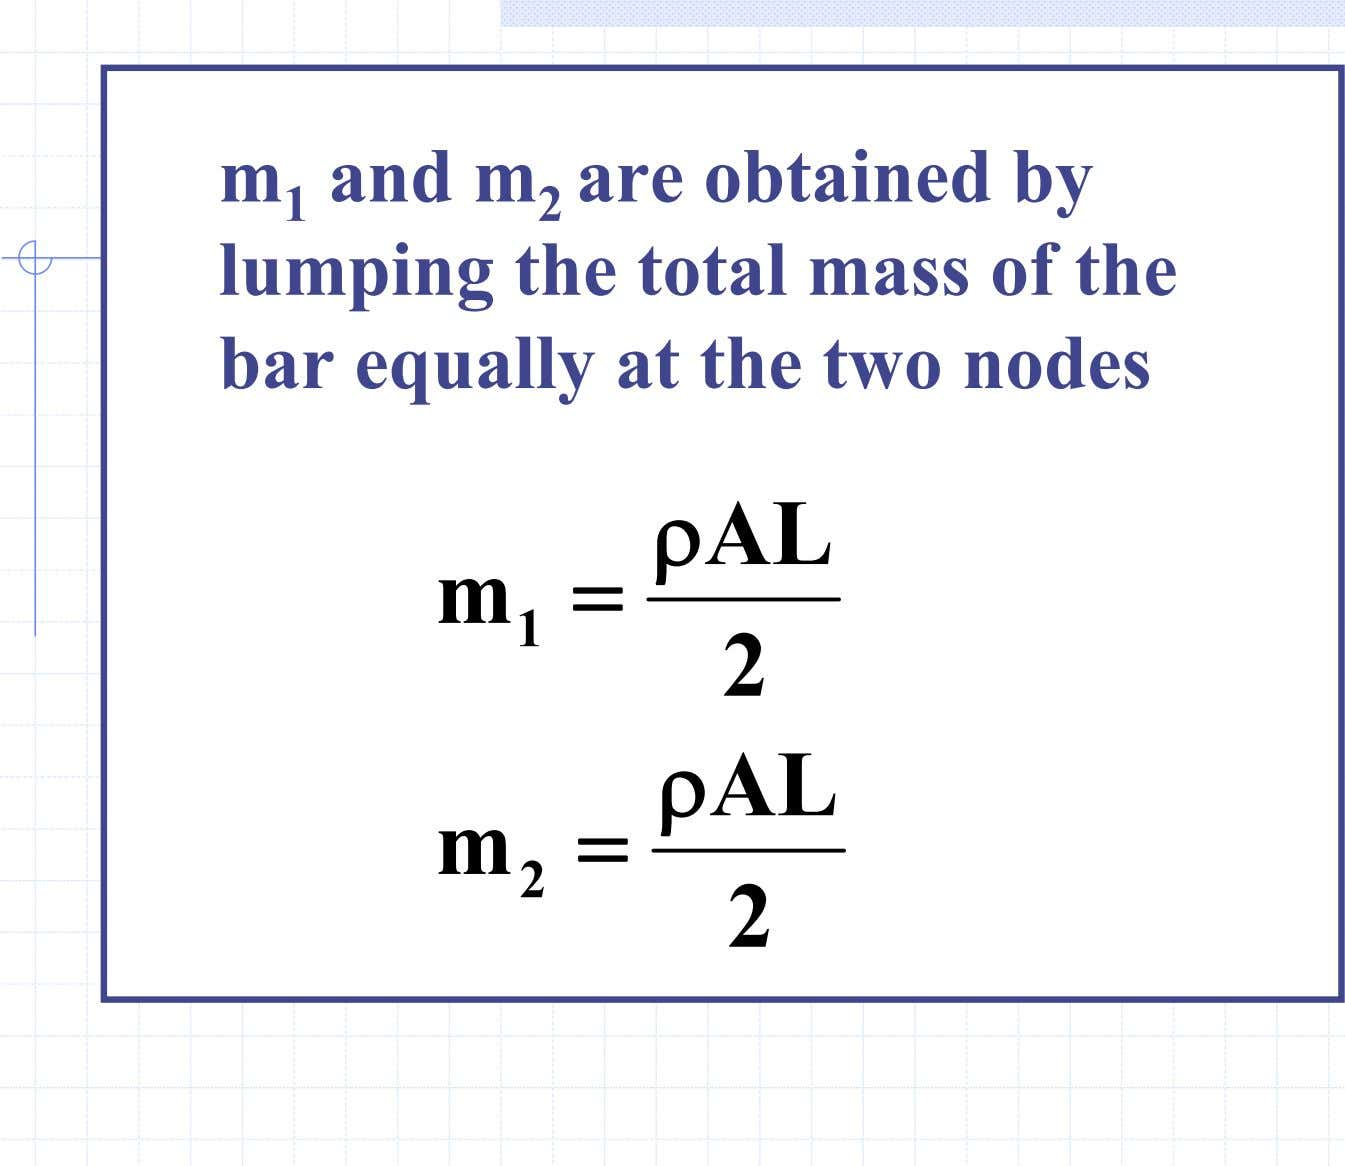 m 1 and m 2 are obtained by lumping the total mass of the bar